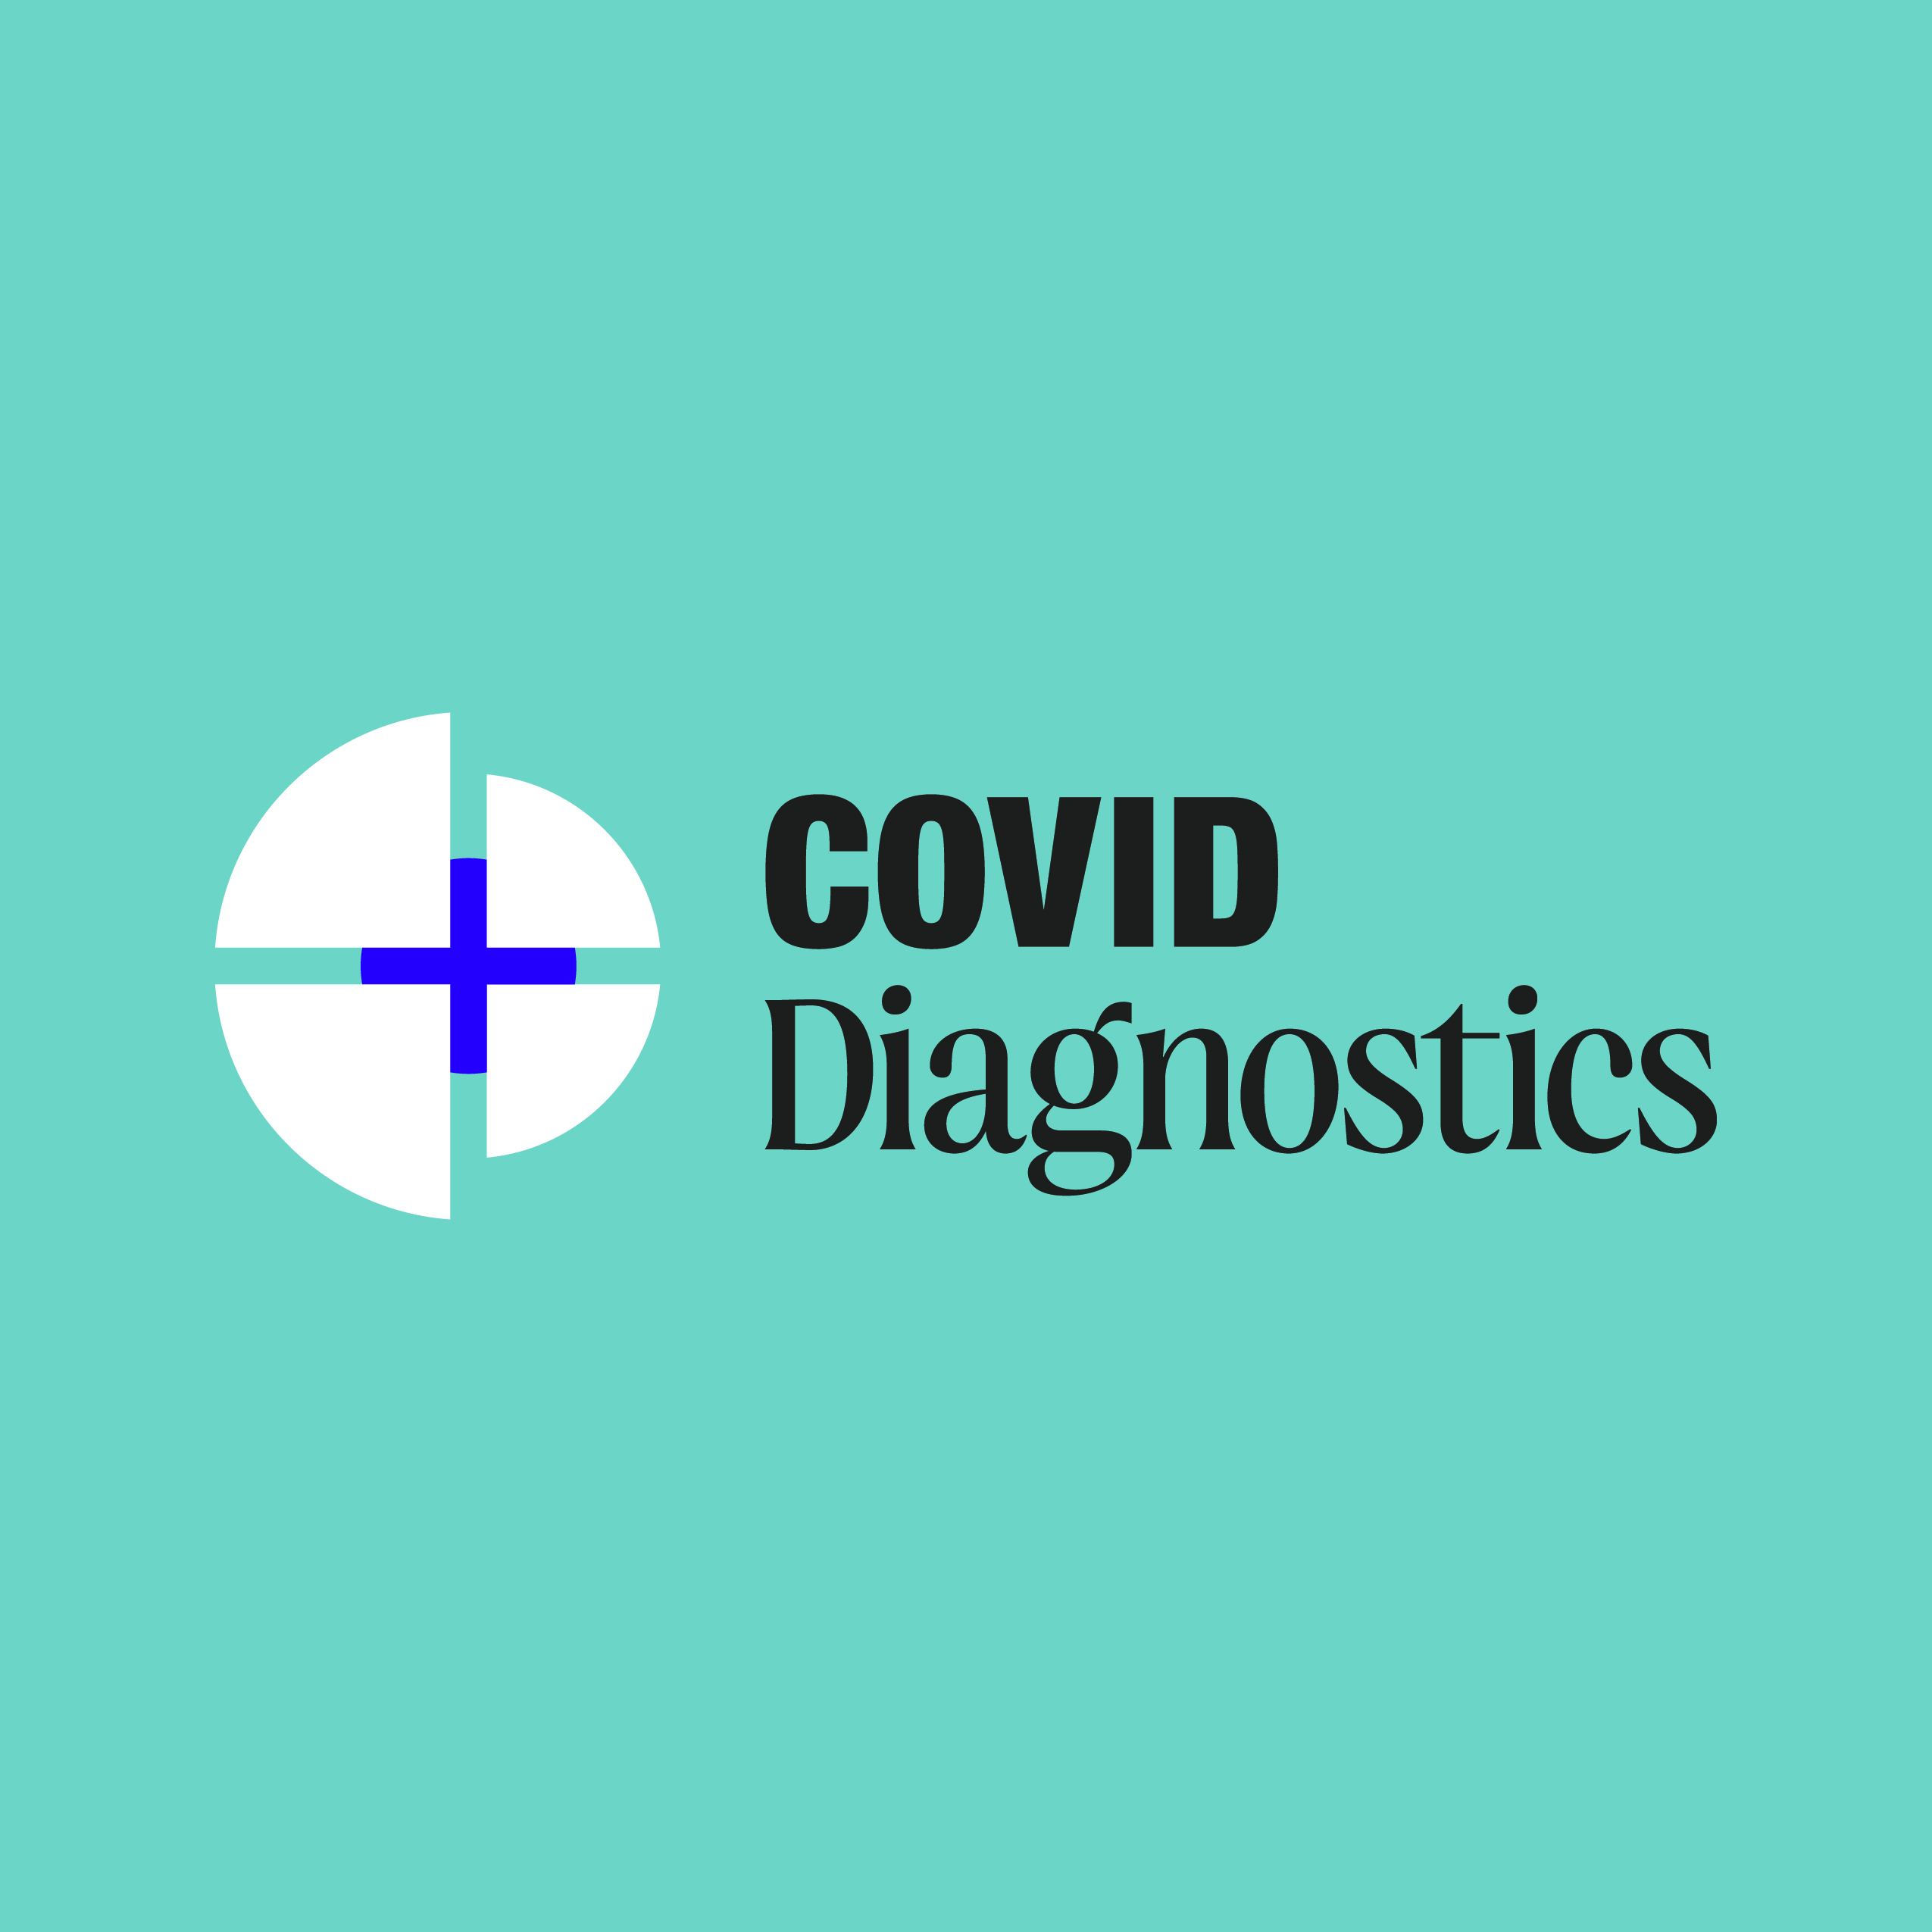 Covid Diagnostics Logo